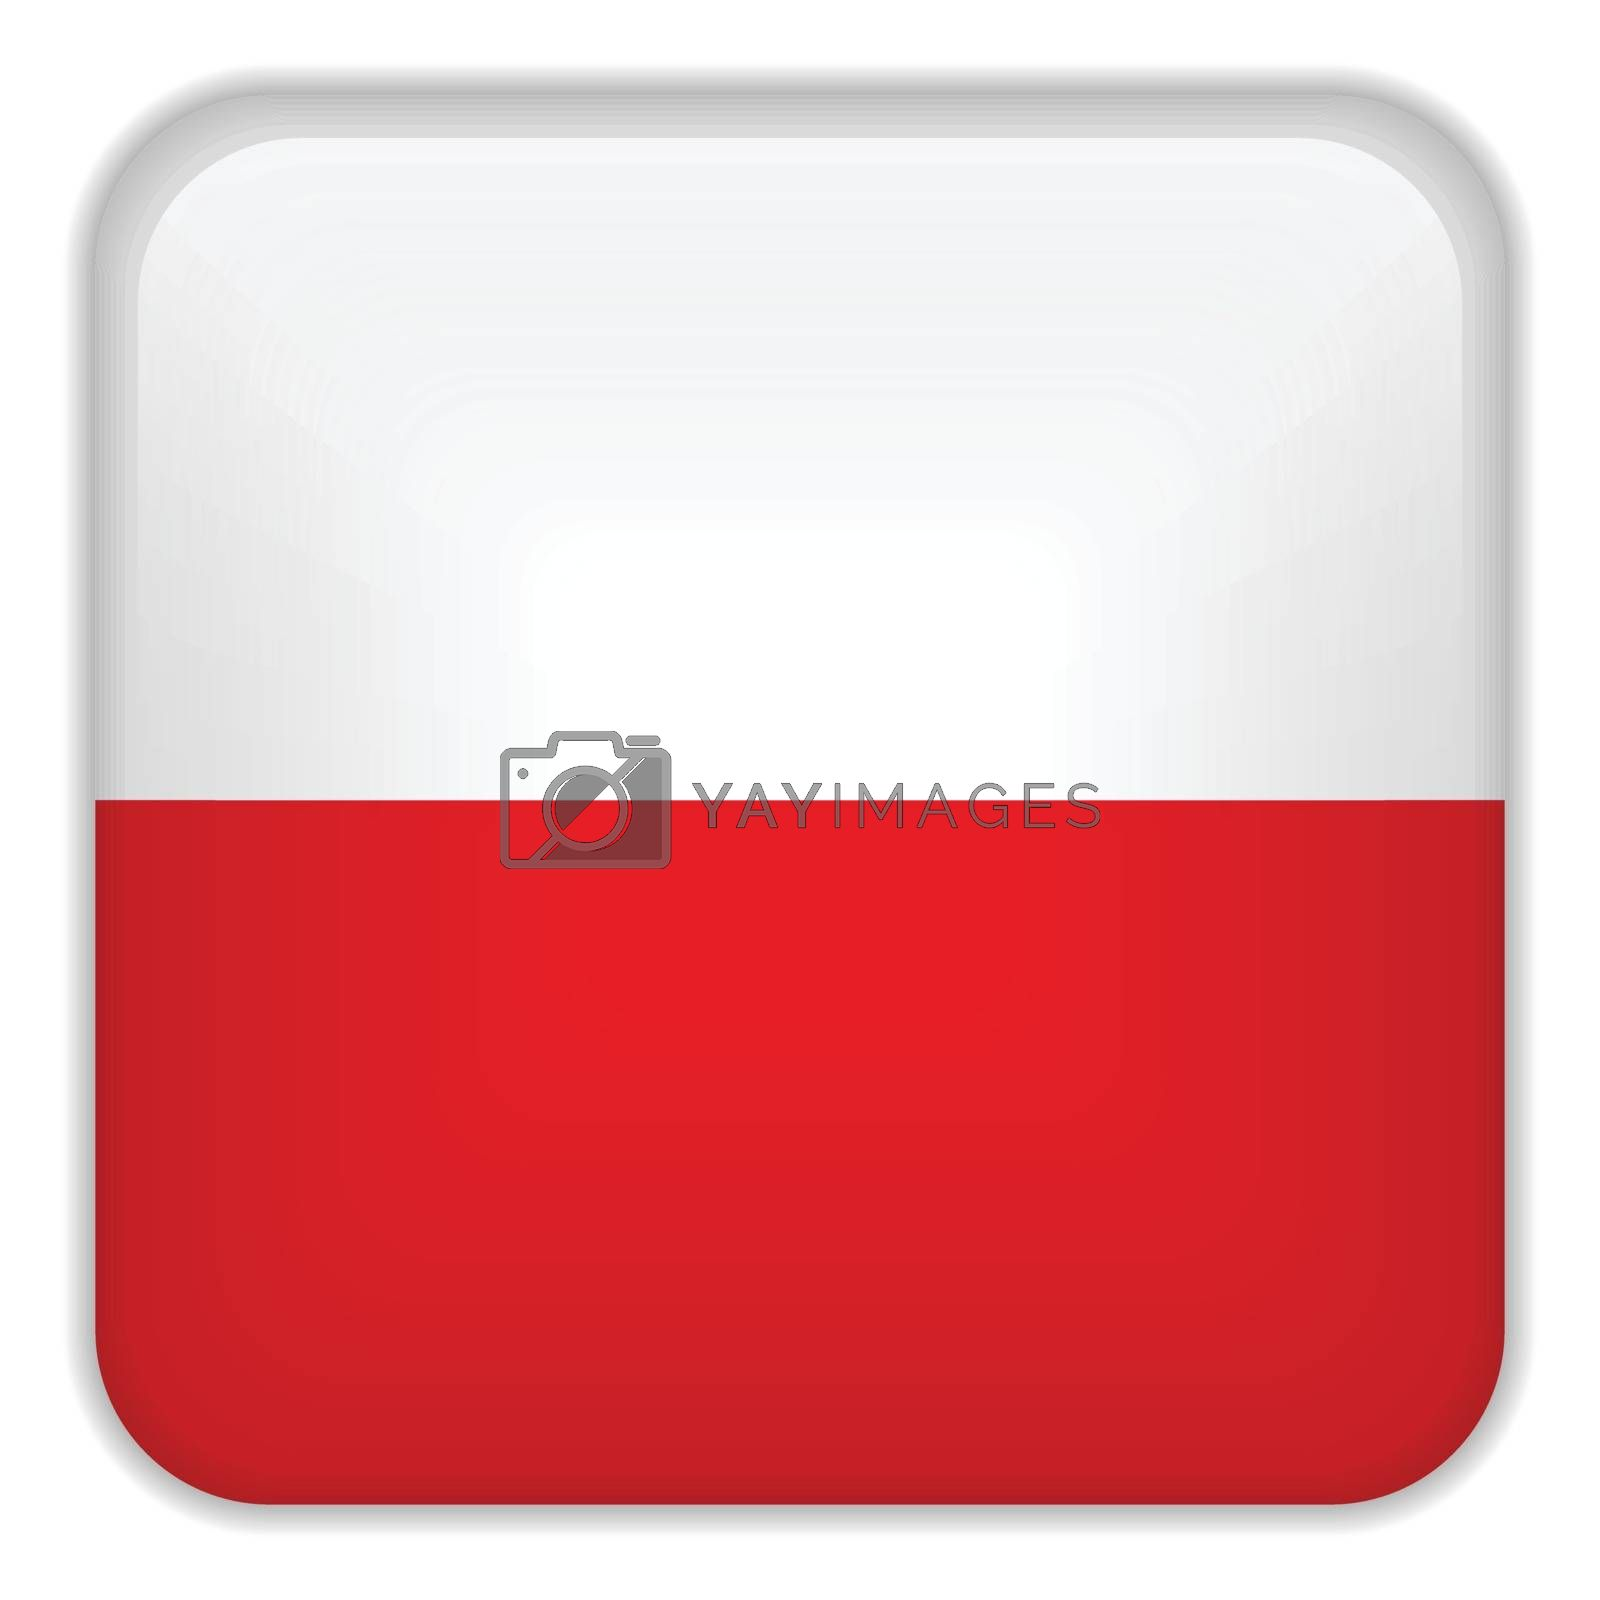 Vector - Poland Flag Smartphone Application Square Buttons